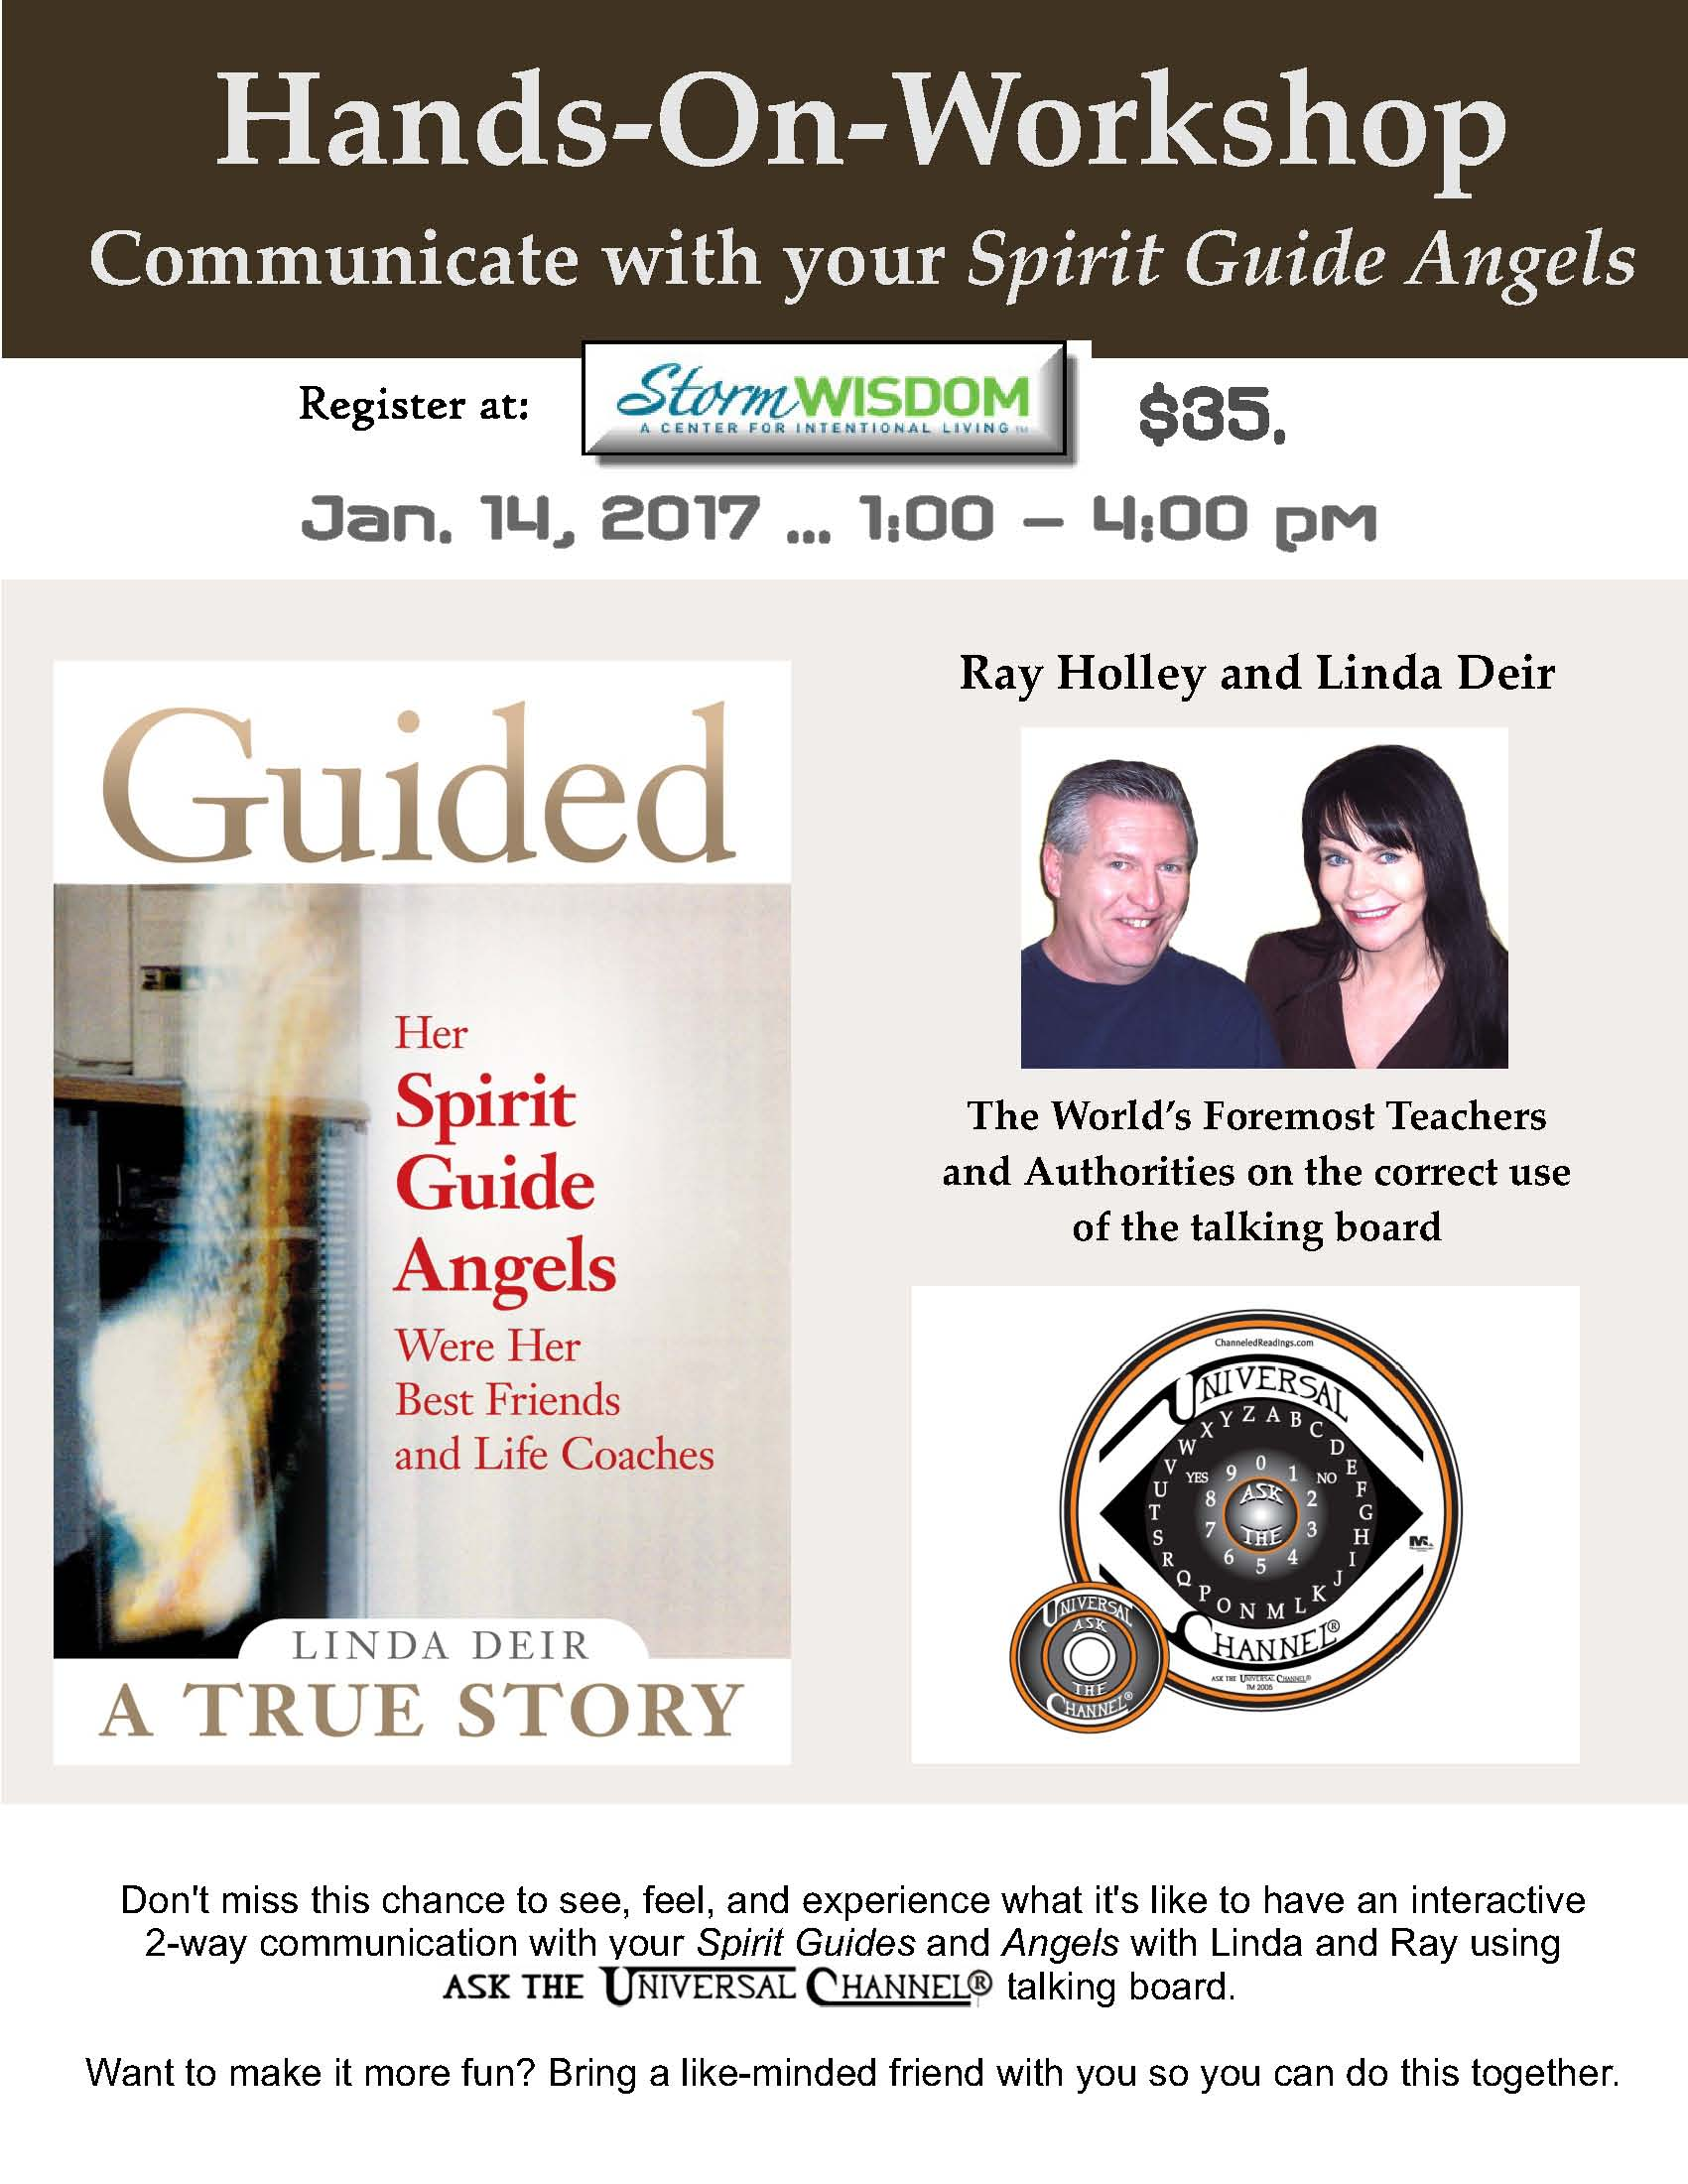 Hands-on-Workshop… Channeling your Spirit Guides and Angels using Ask The Universal Channel® talking board